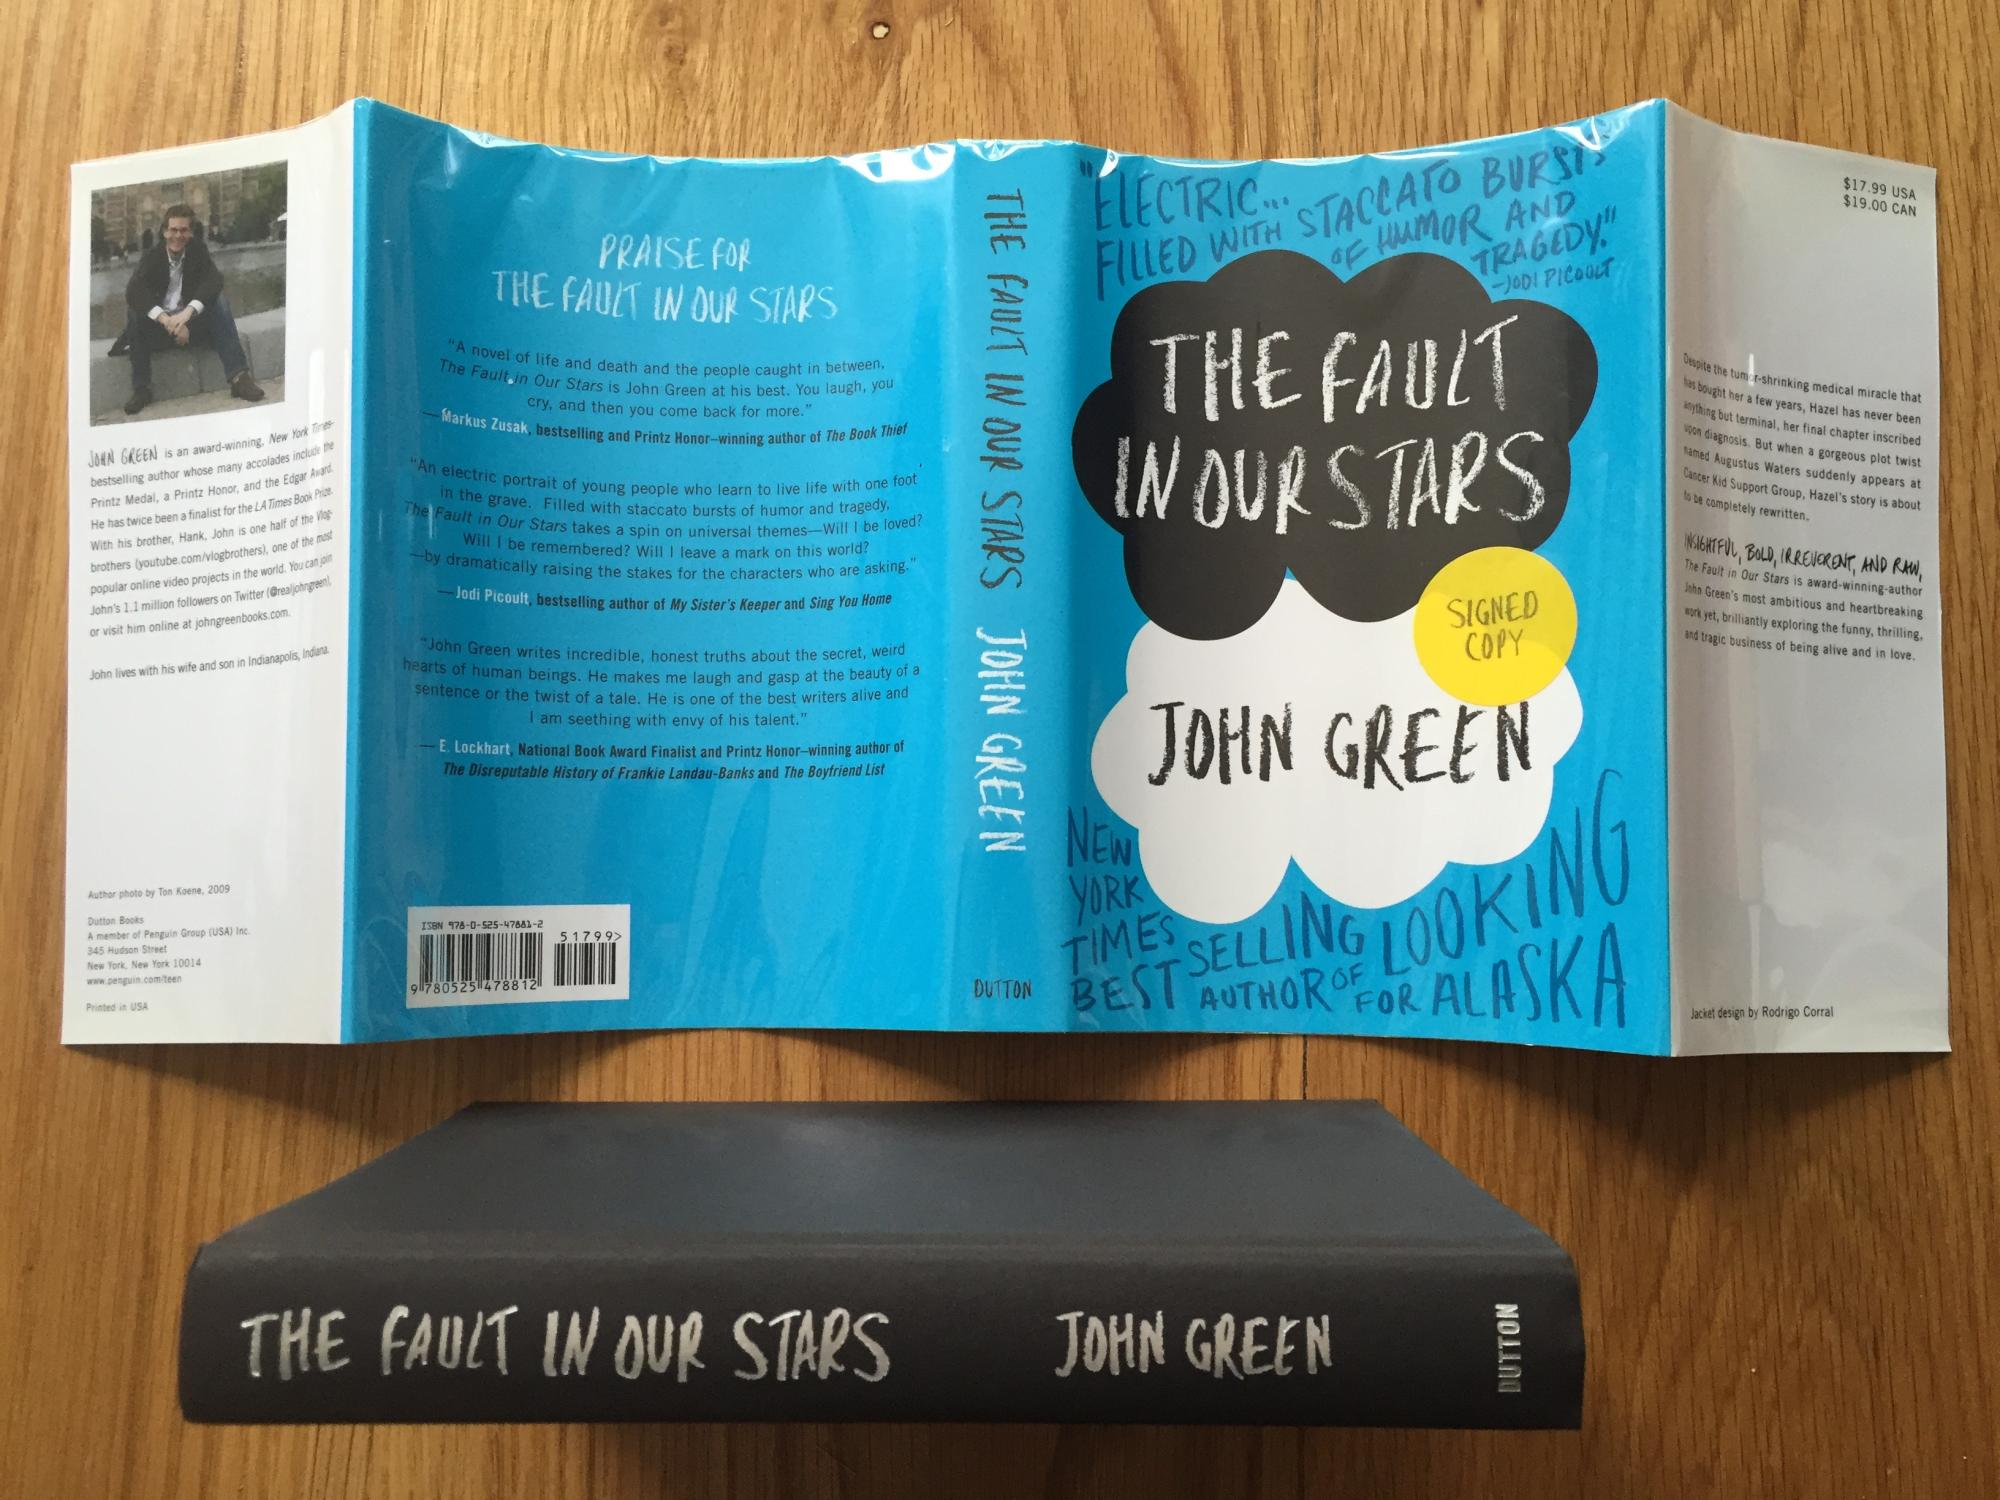 the fault in our stars indies choice book awards young